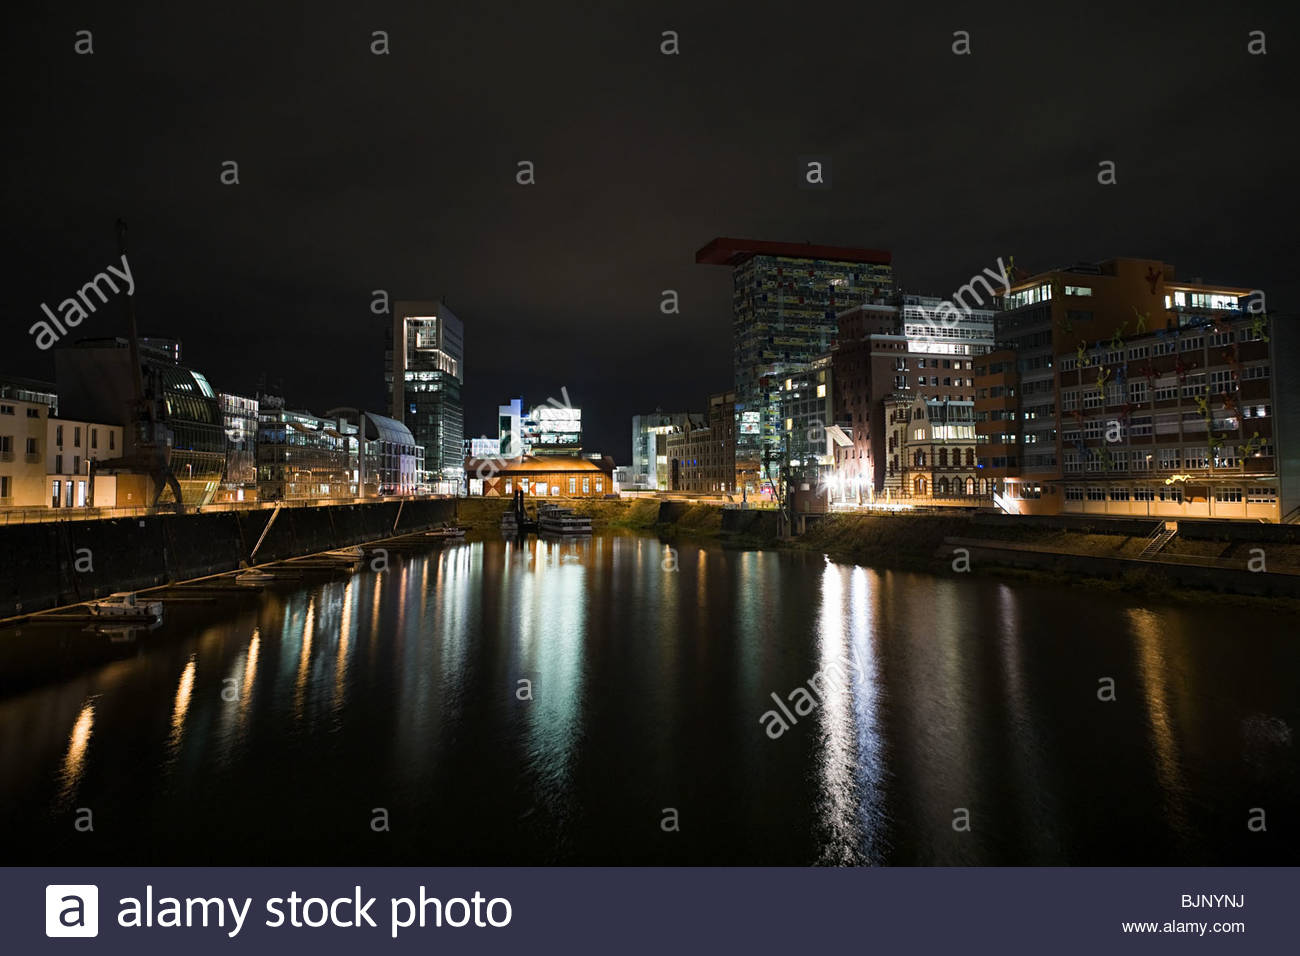 Dusseldorf media harbour at night - Stock Image